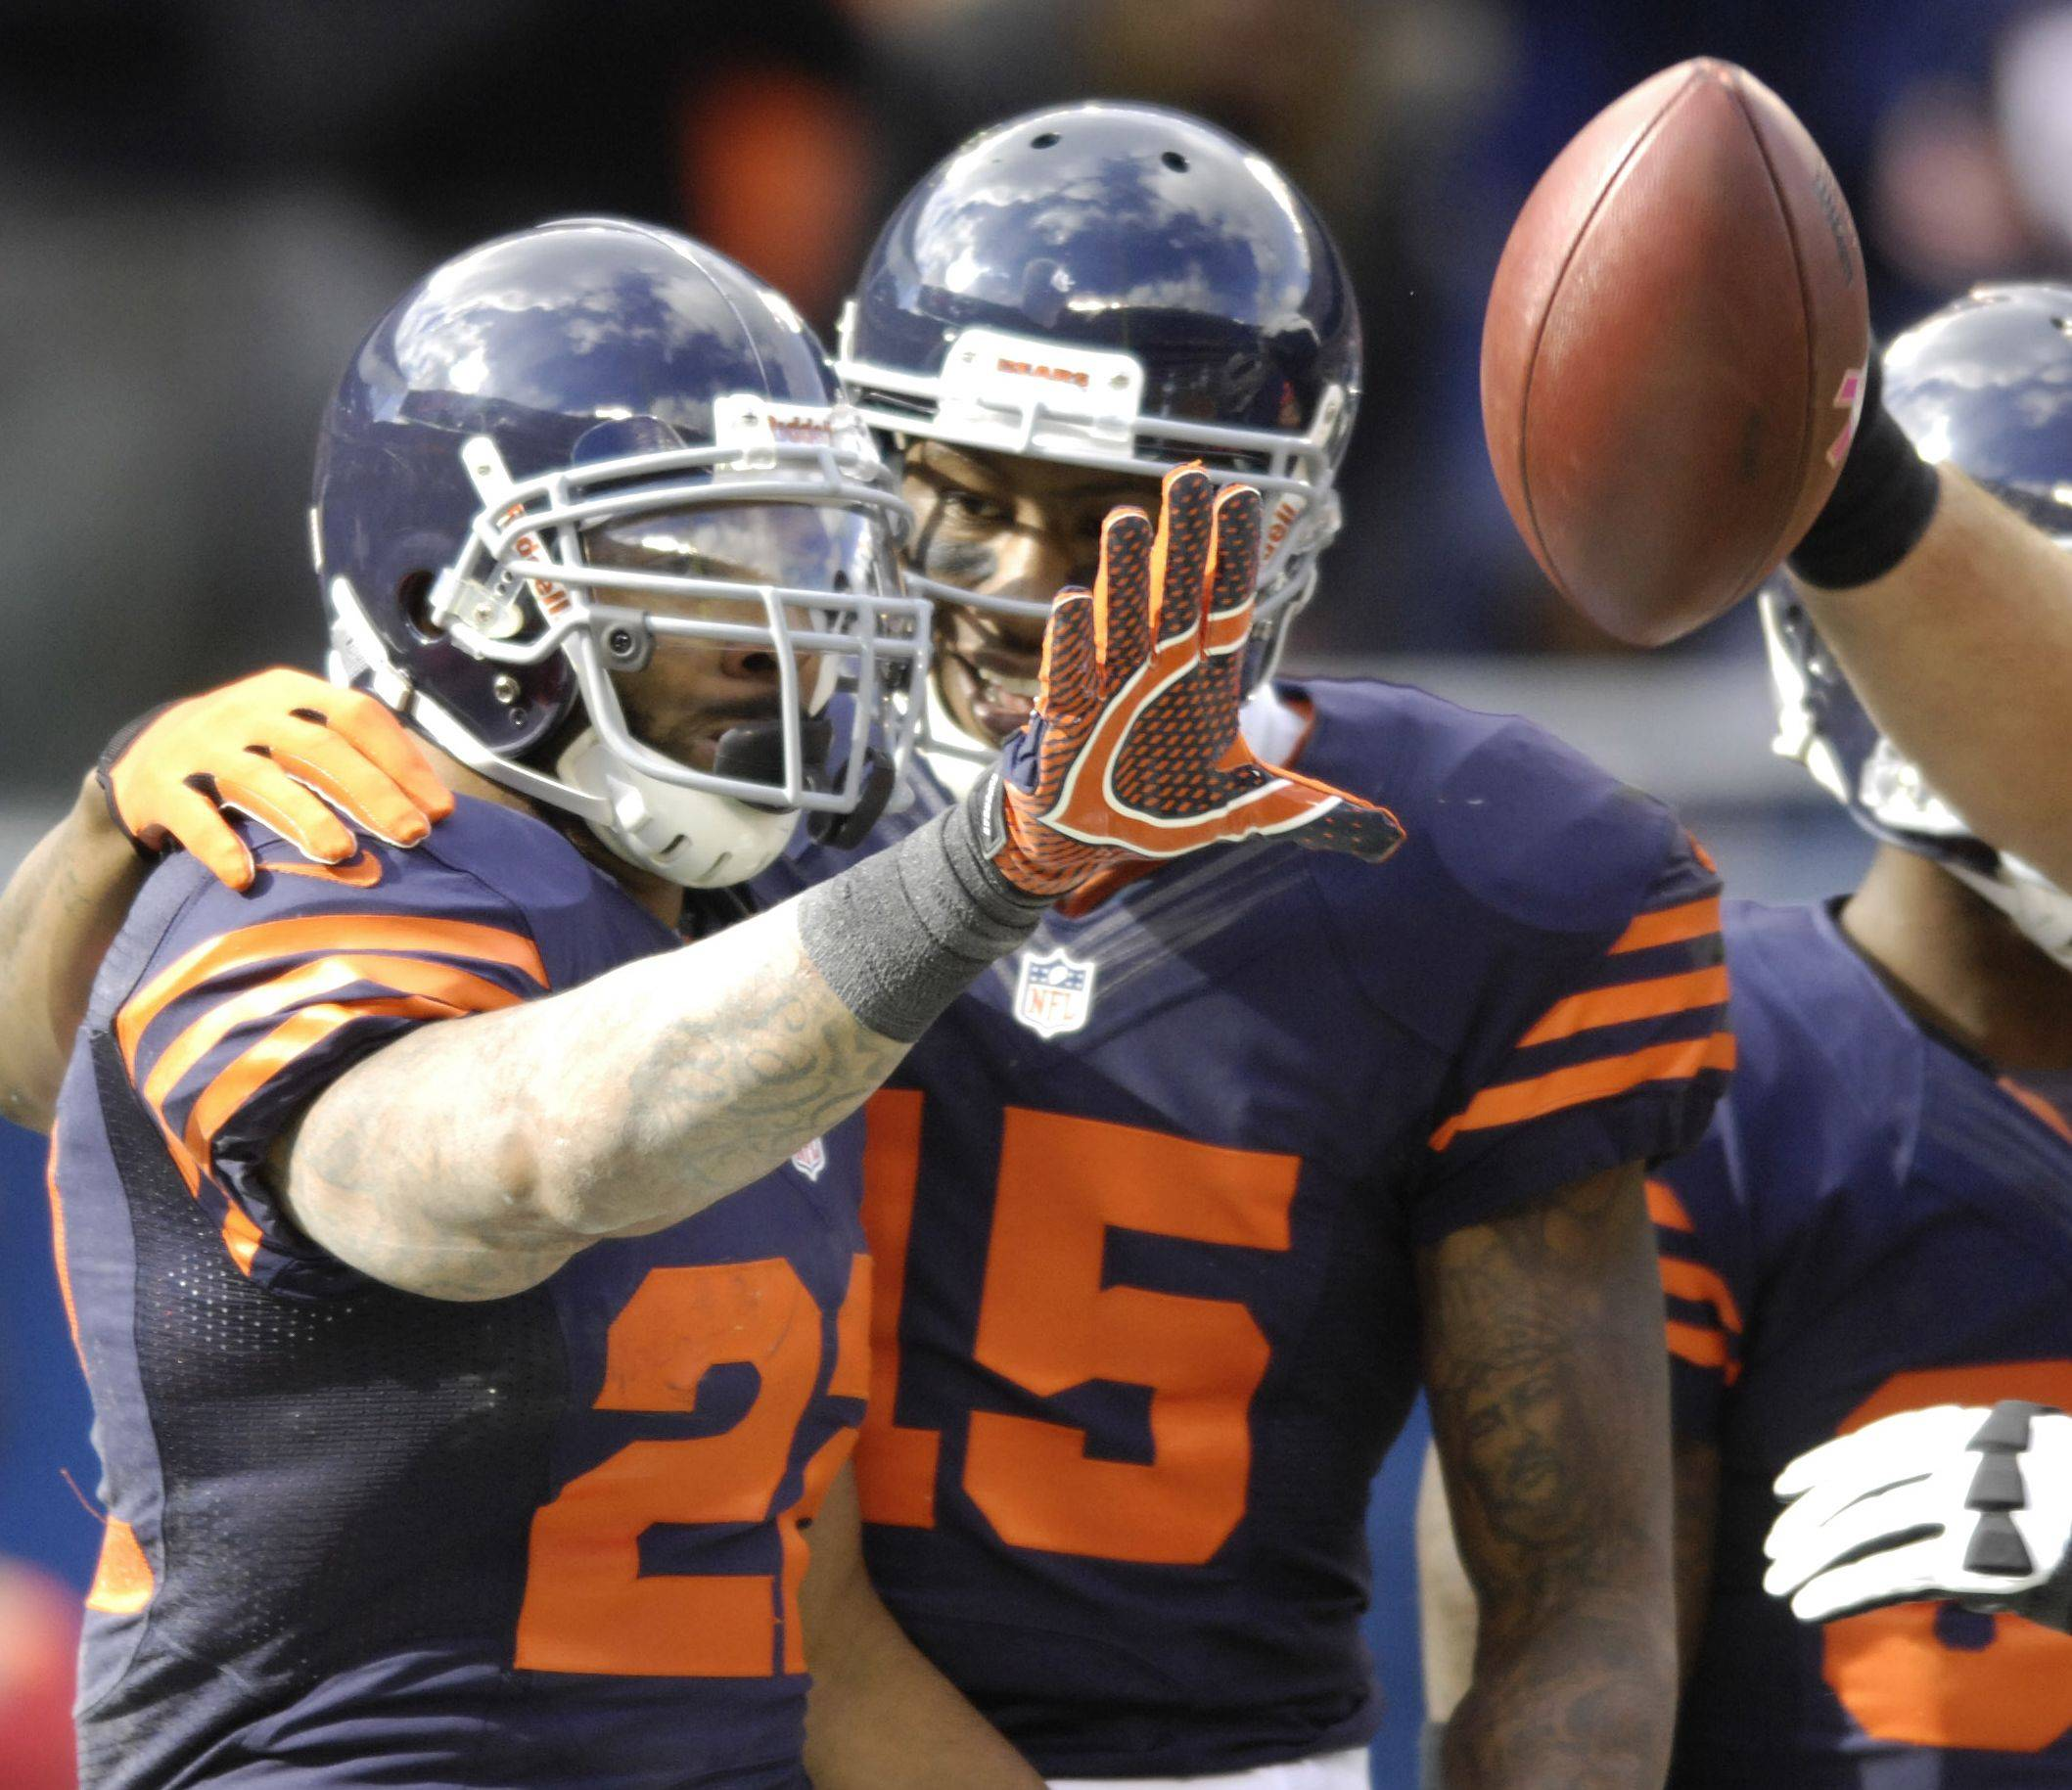 Matt Forte, left, celebrtes his touchdown run with Brandon Marshall against Carolina last Sunday. After seven games, Forte's numbers are down this year compared to 2011.